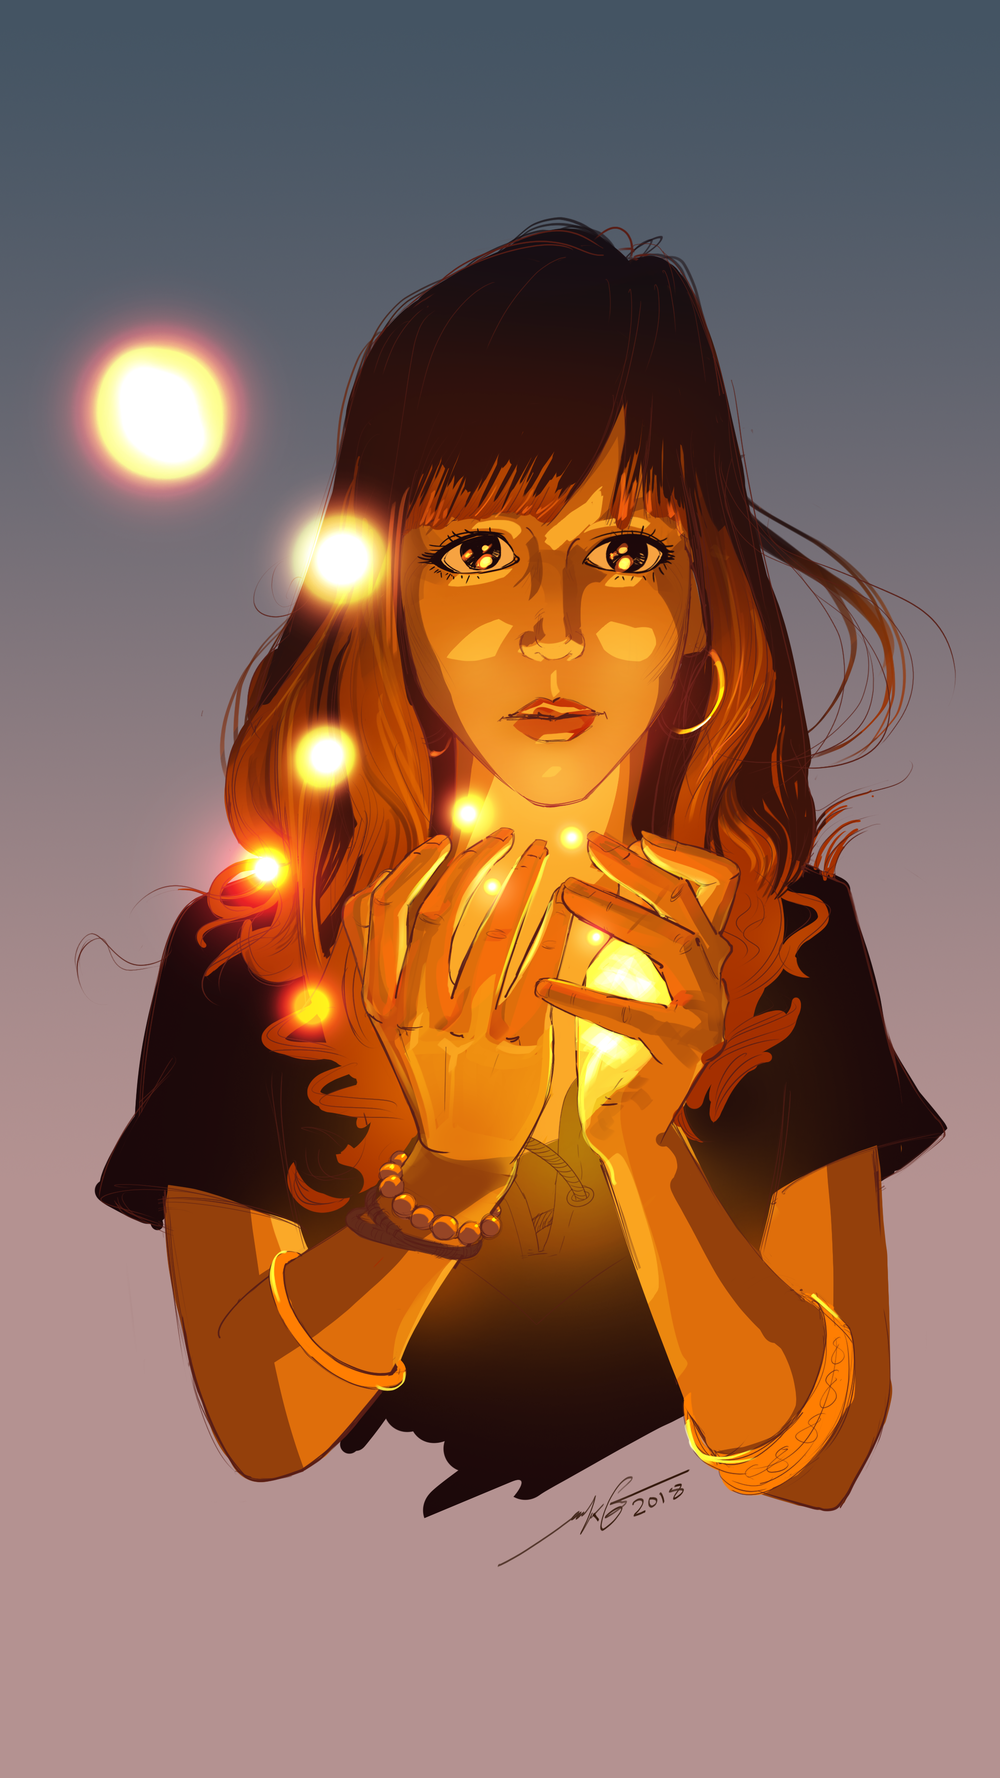 Firefly Girl  Photoshop Illustration